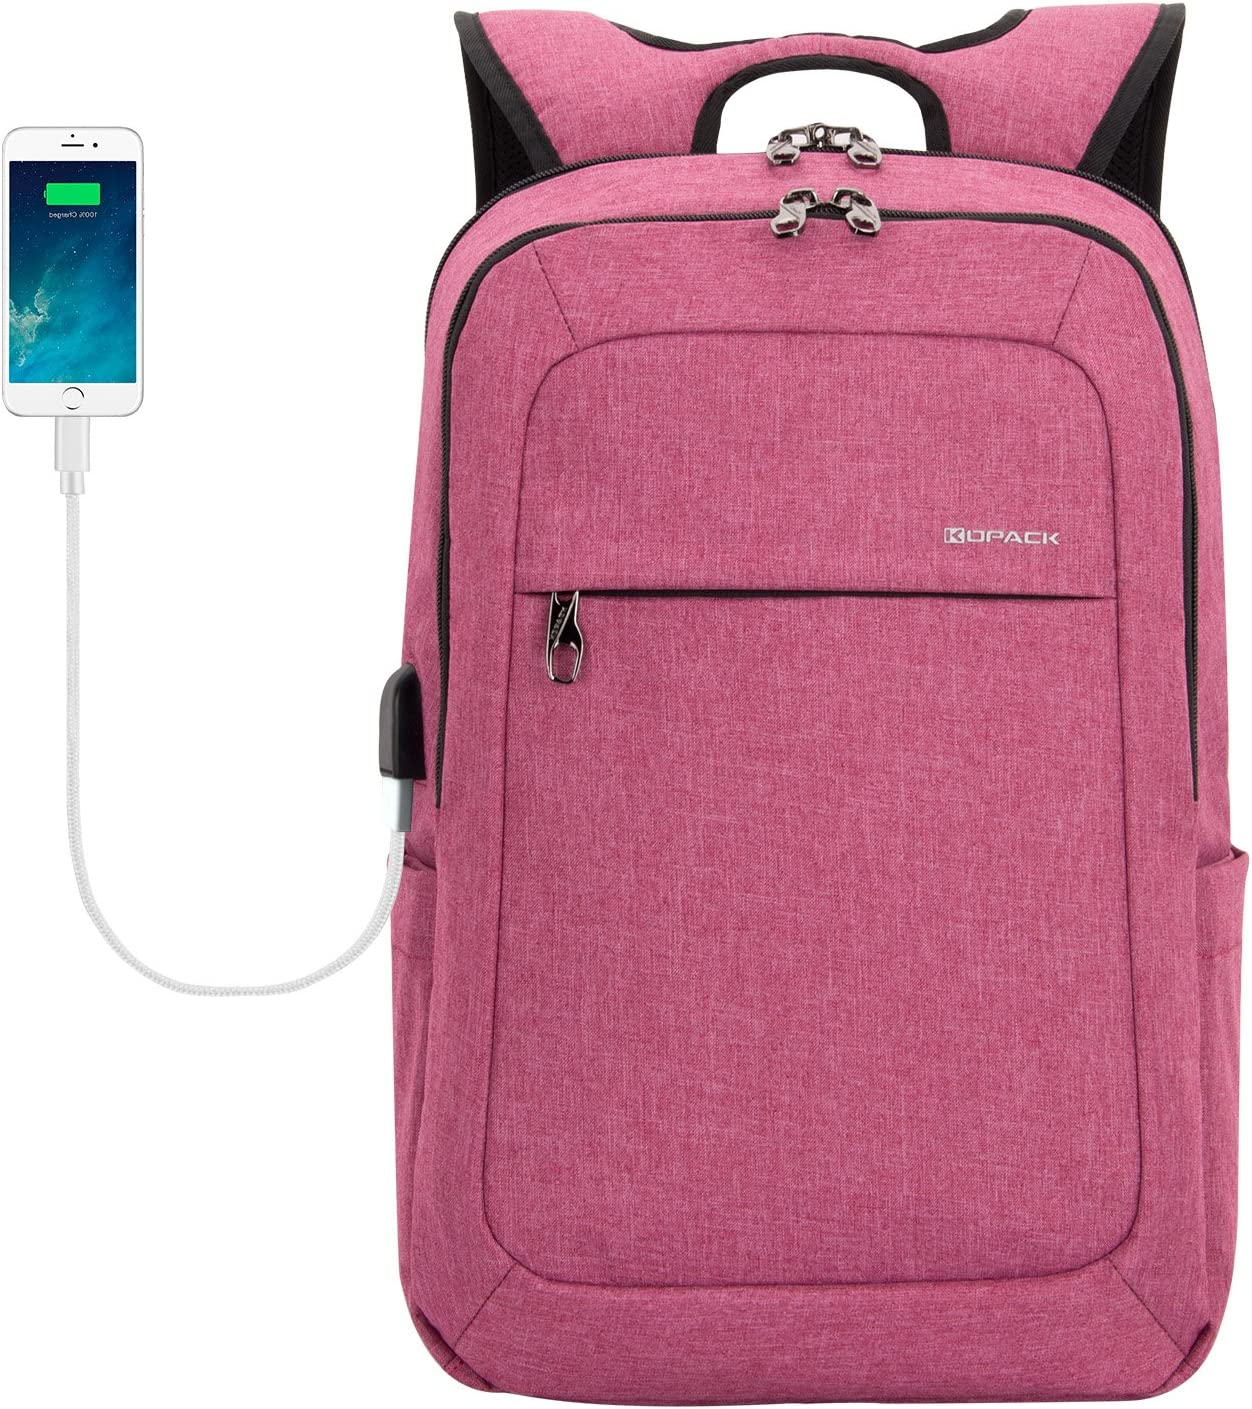 KOPACK Women Laptop Backpack College USB Charging Port Anti Theft Laptop Compartment 15.6 Inch Laptop Bag Magenta